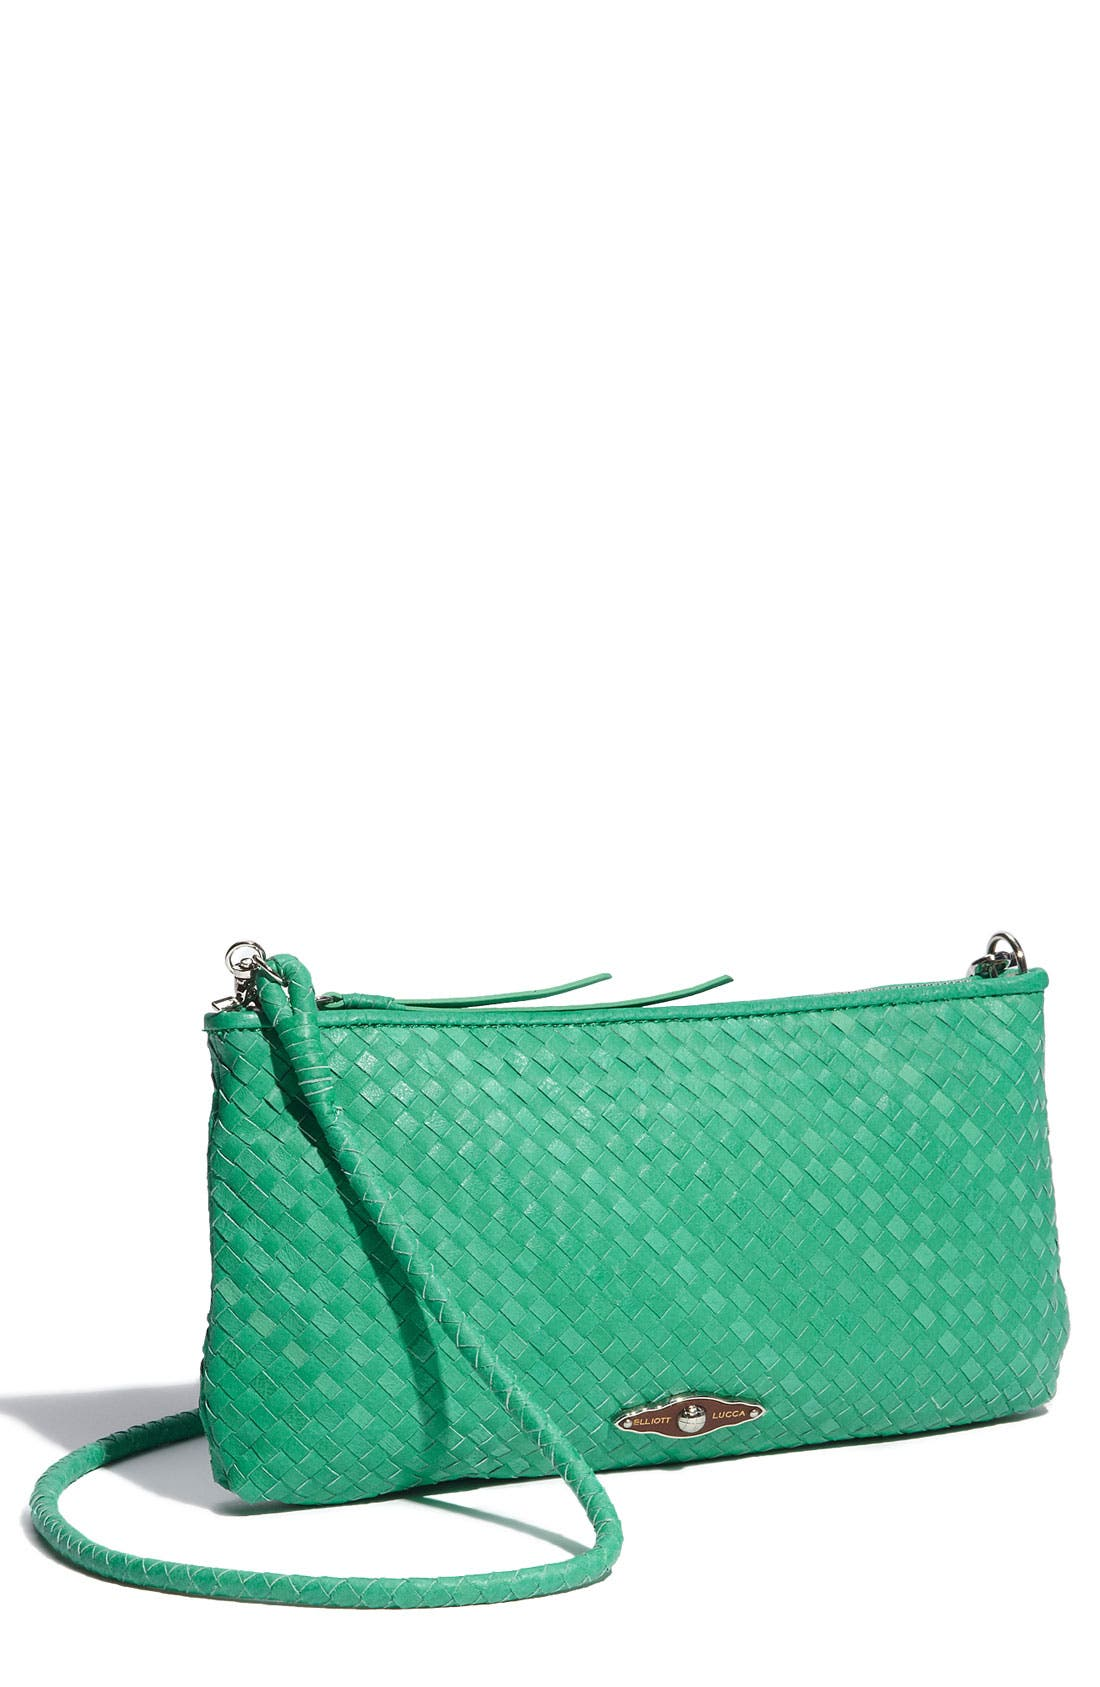 Main Image - Elliott Lucca '3-Way' Woven Leather Demi Bag